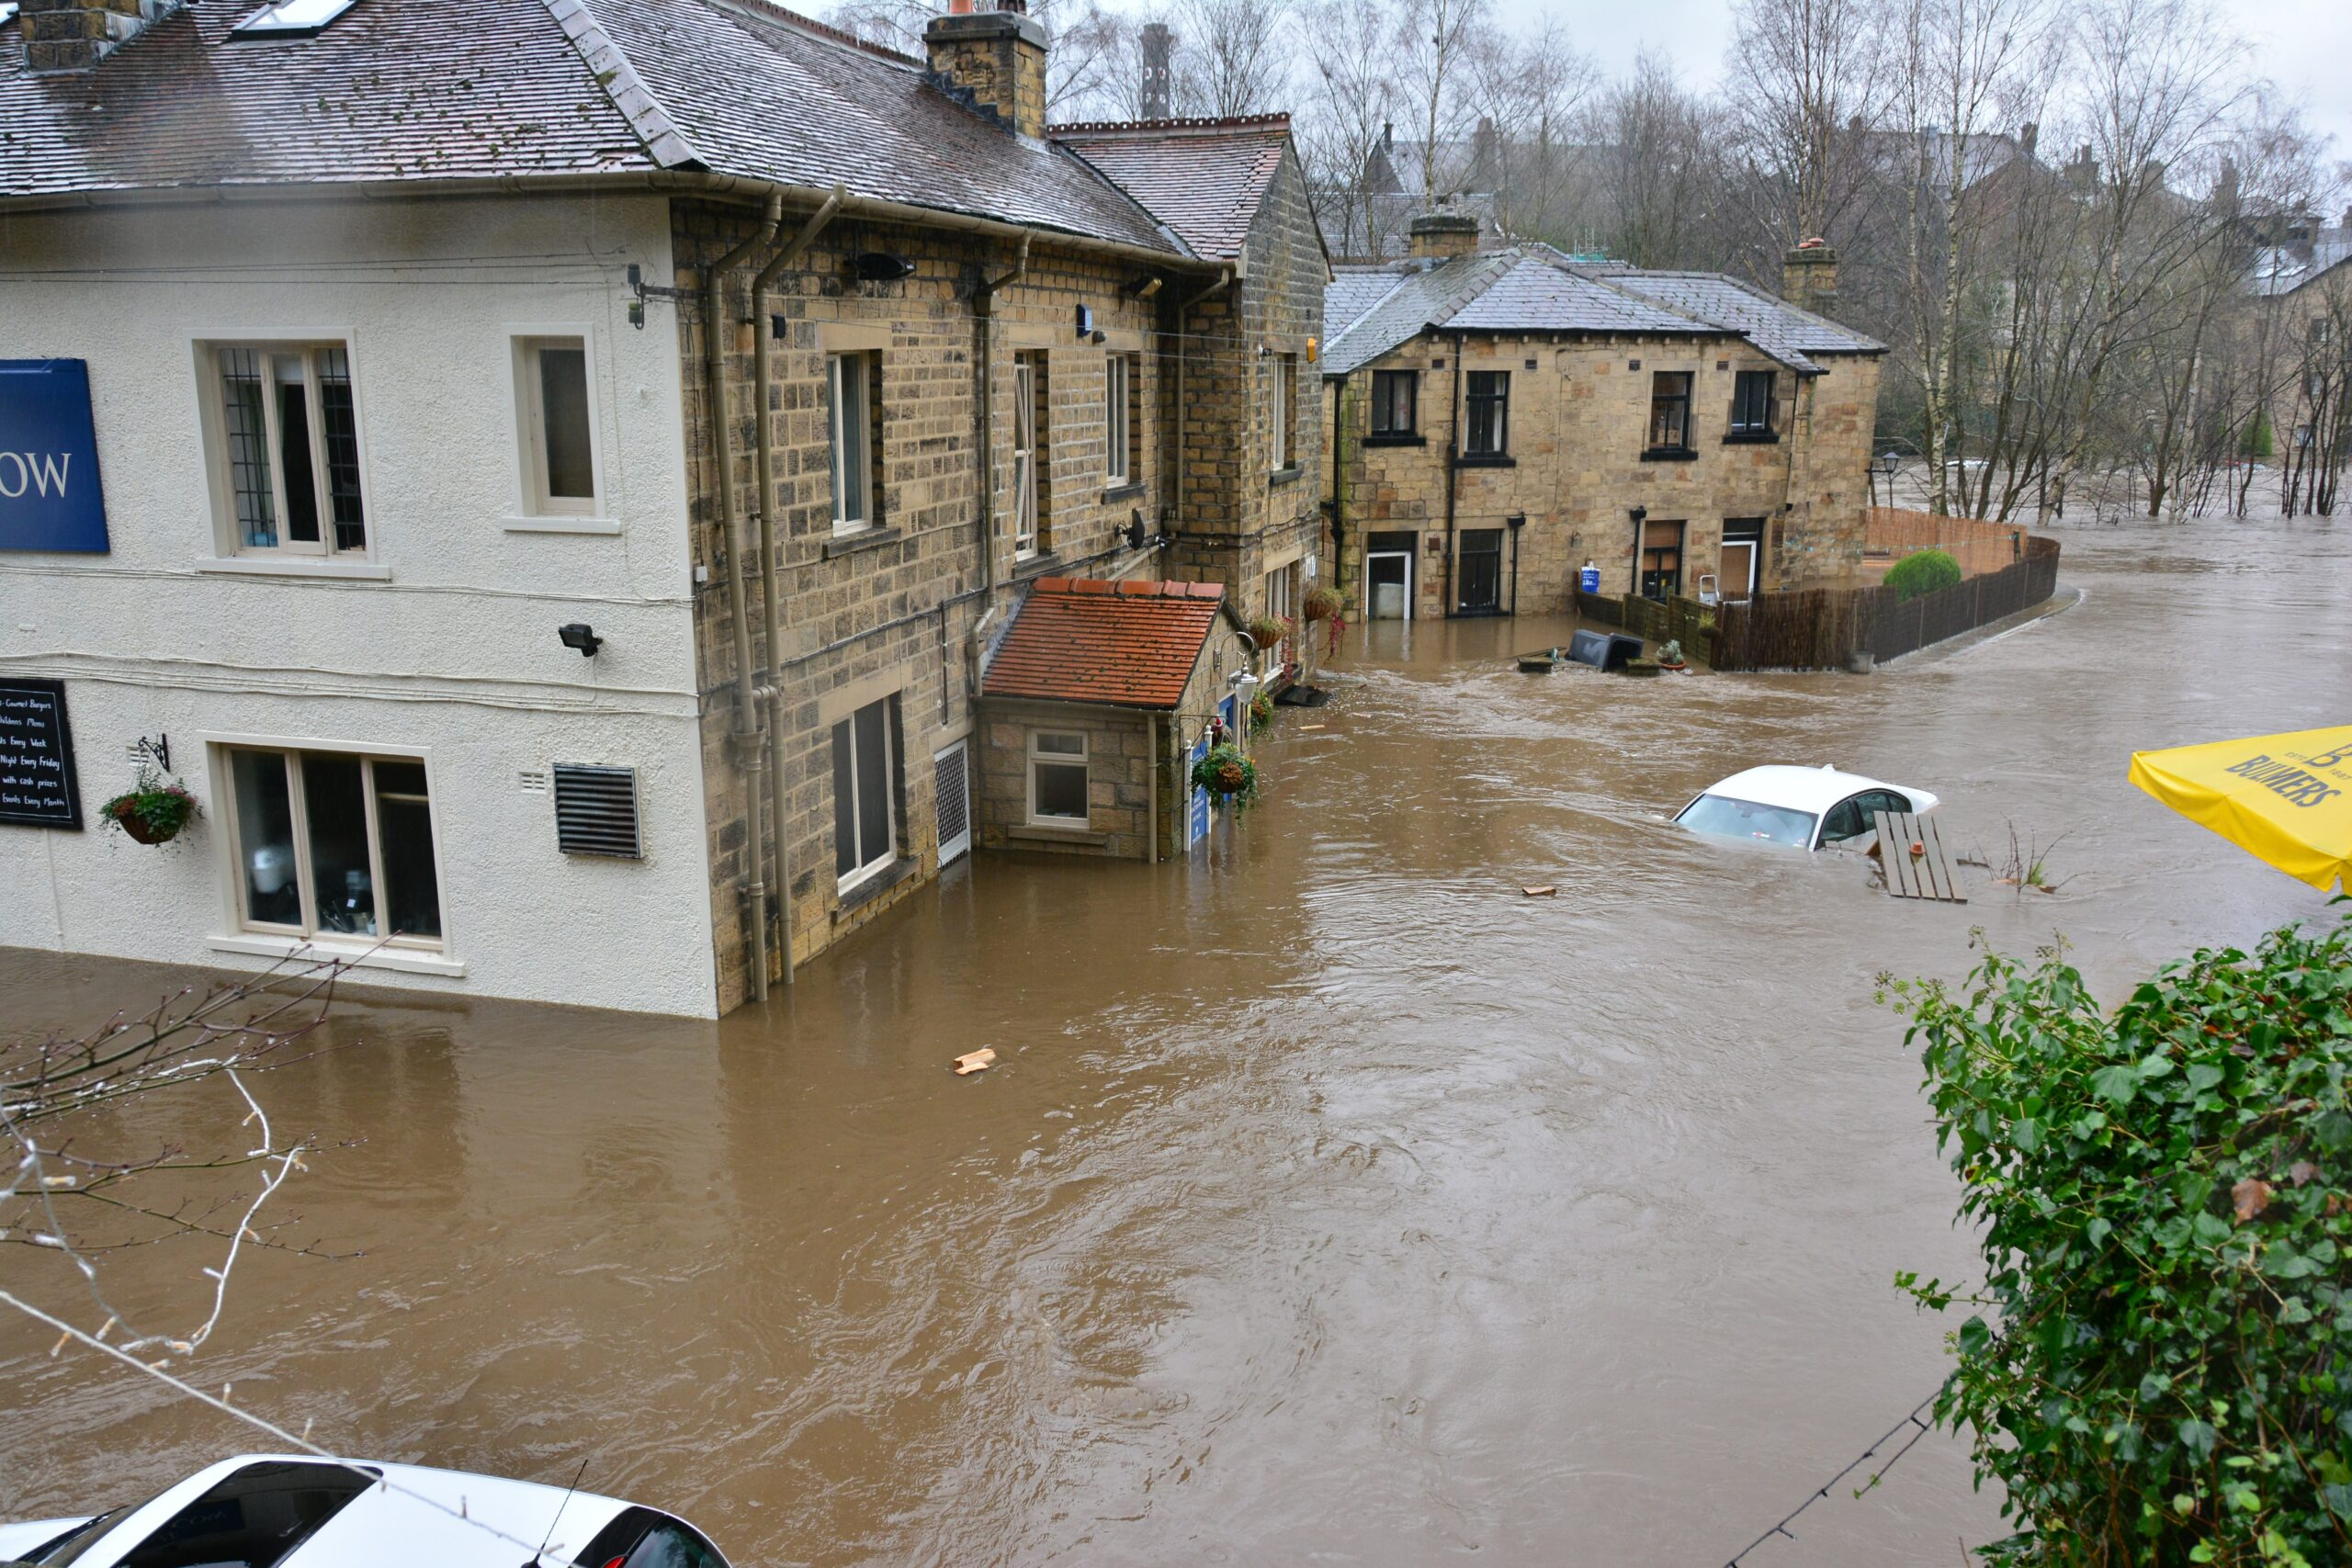 Flood Prevention can teach us about Data Management